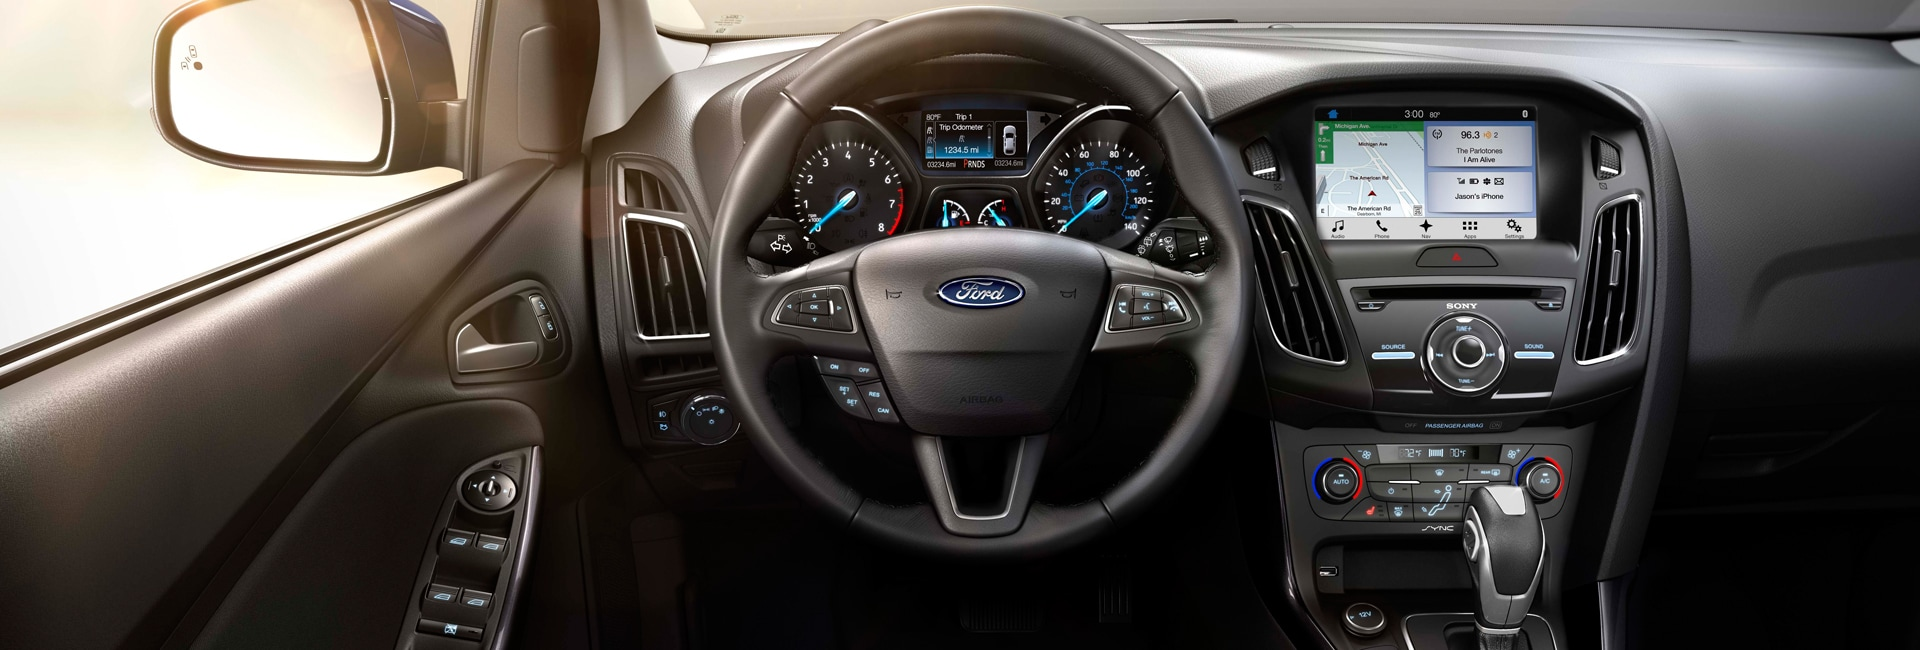 Ford Focus Interior Vehicle Features